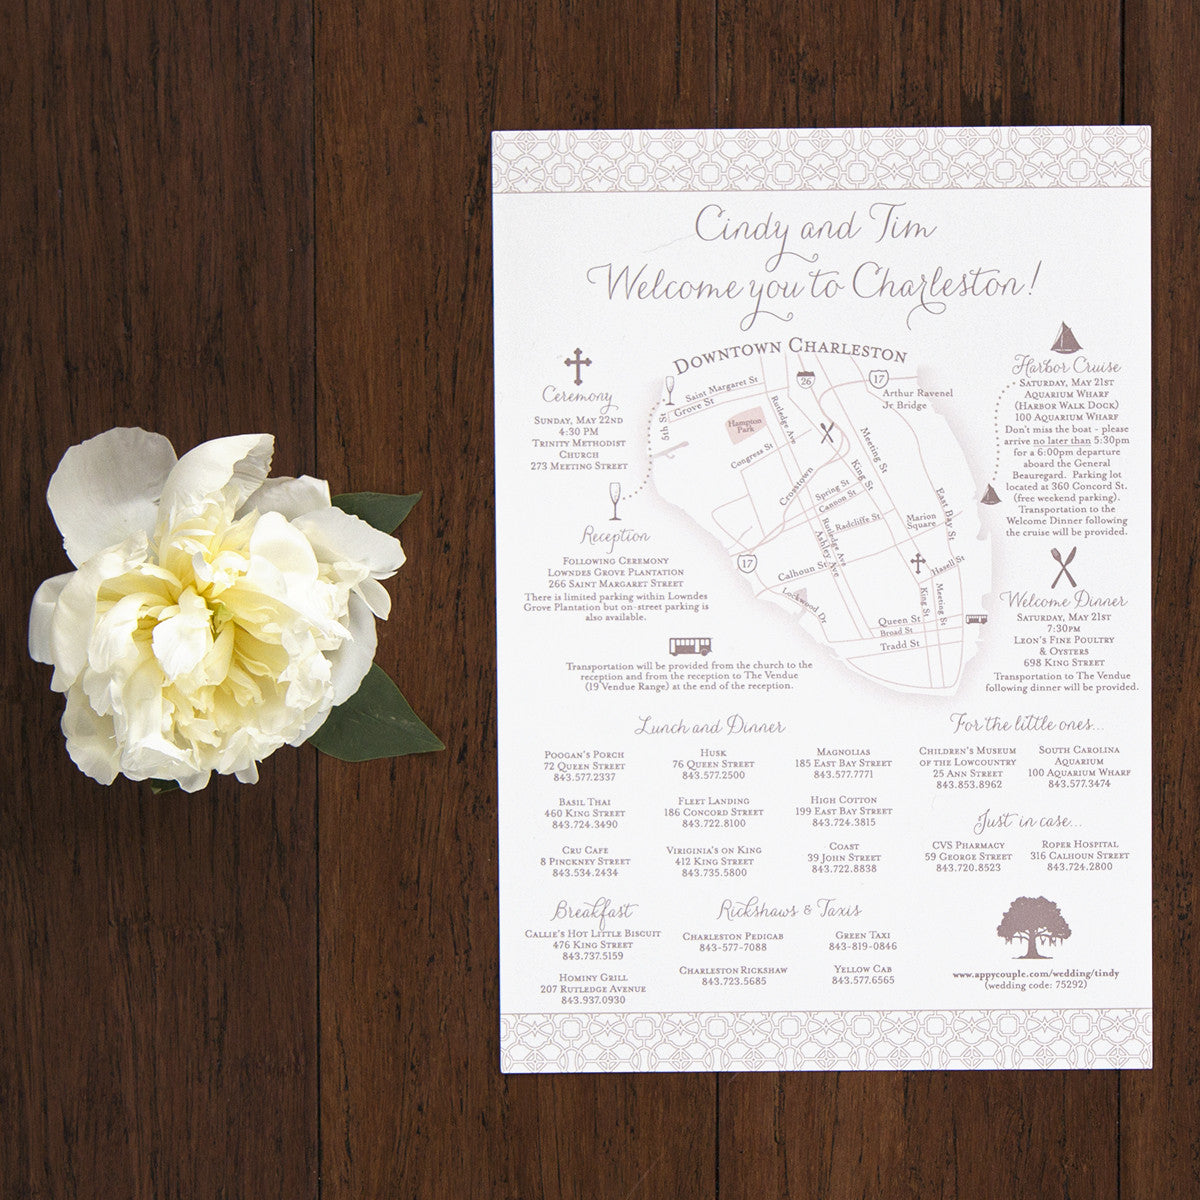 Wedding weekend itinerary and map scotti cline designs charleston wedding weekend itinerary by scotti cline designs junglespirit Images